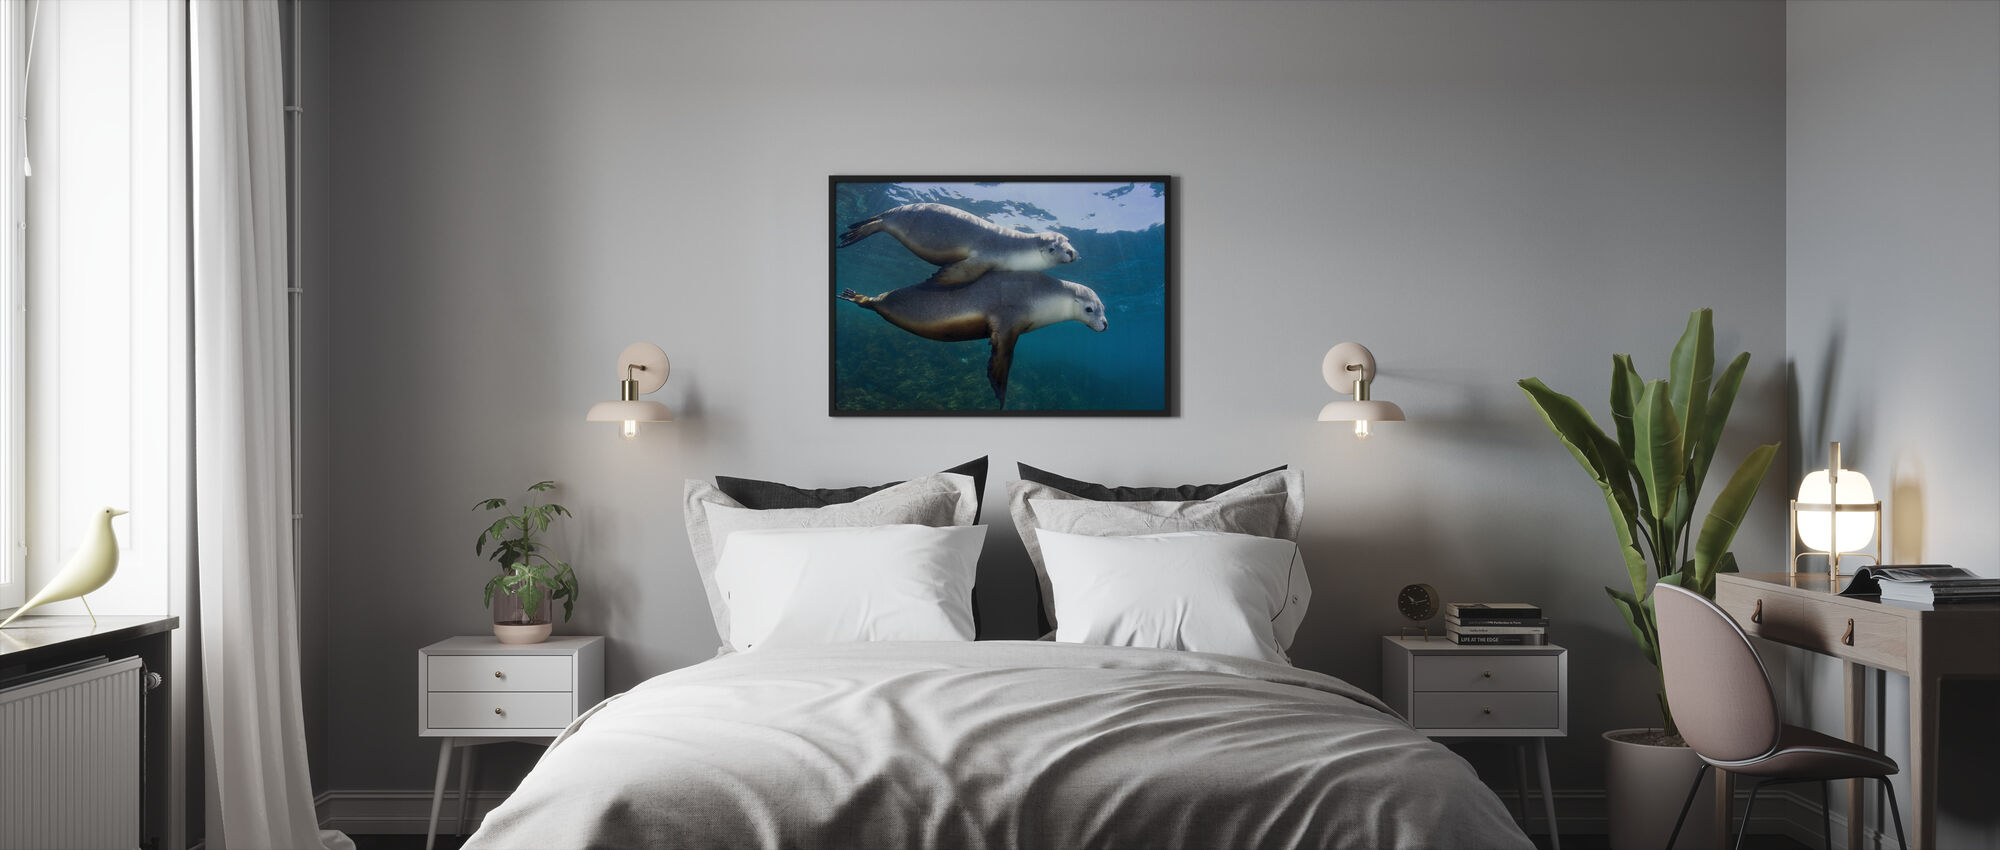 Pair of Sea Lions - Framed print - Bedroom